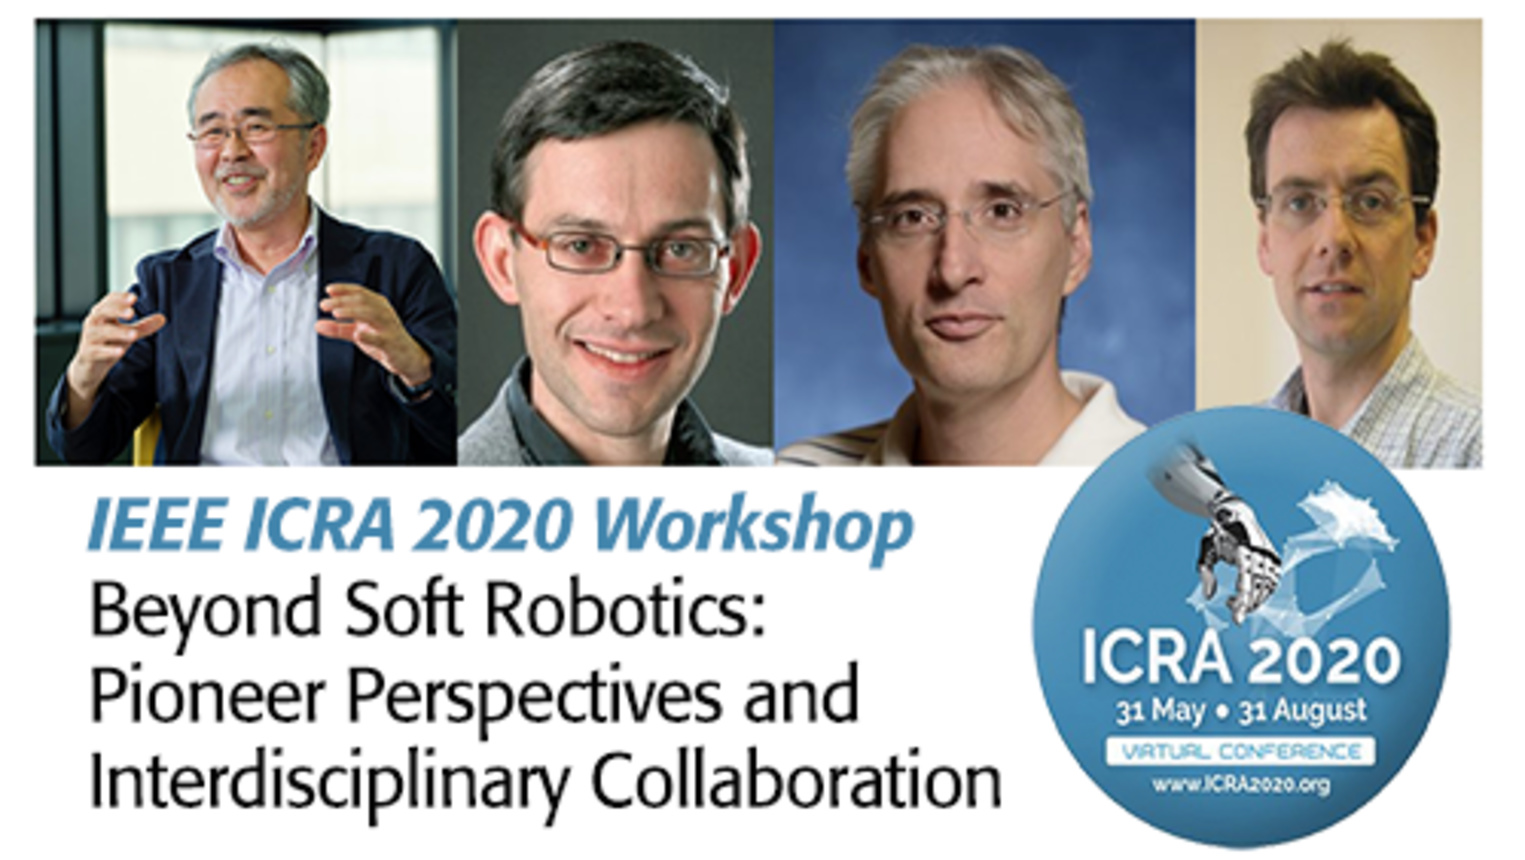 Beyond Soft Robotics: Pioneer Perspectives and Interdisciplinary Collaboration - ICRA 2020